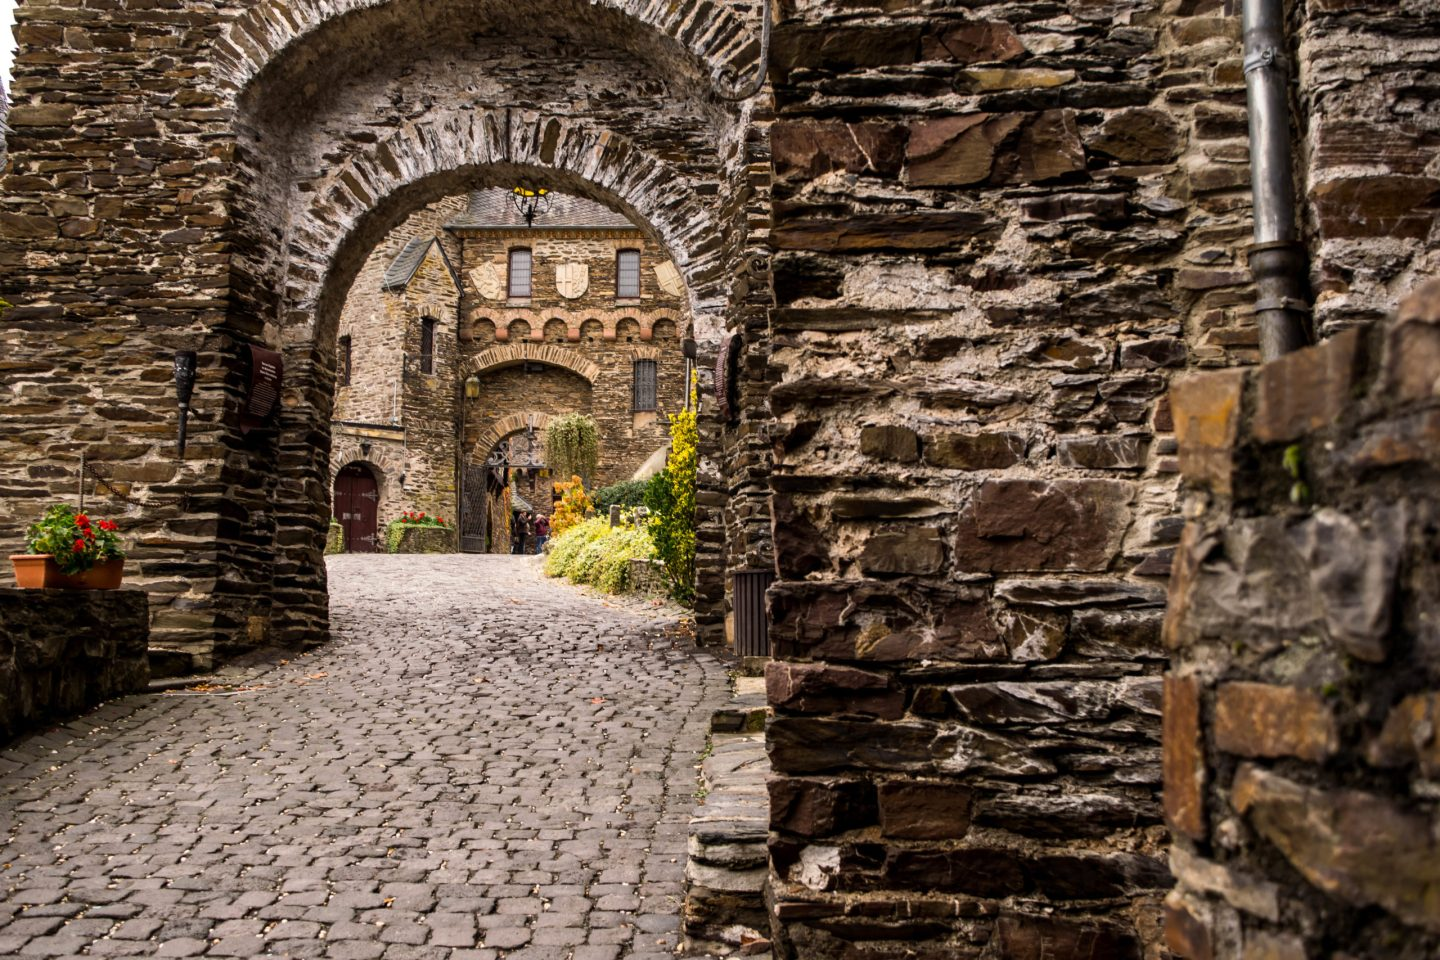 Looking through the many arches at Cochem Castle